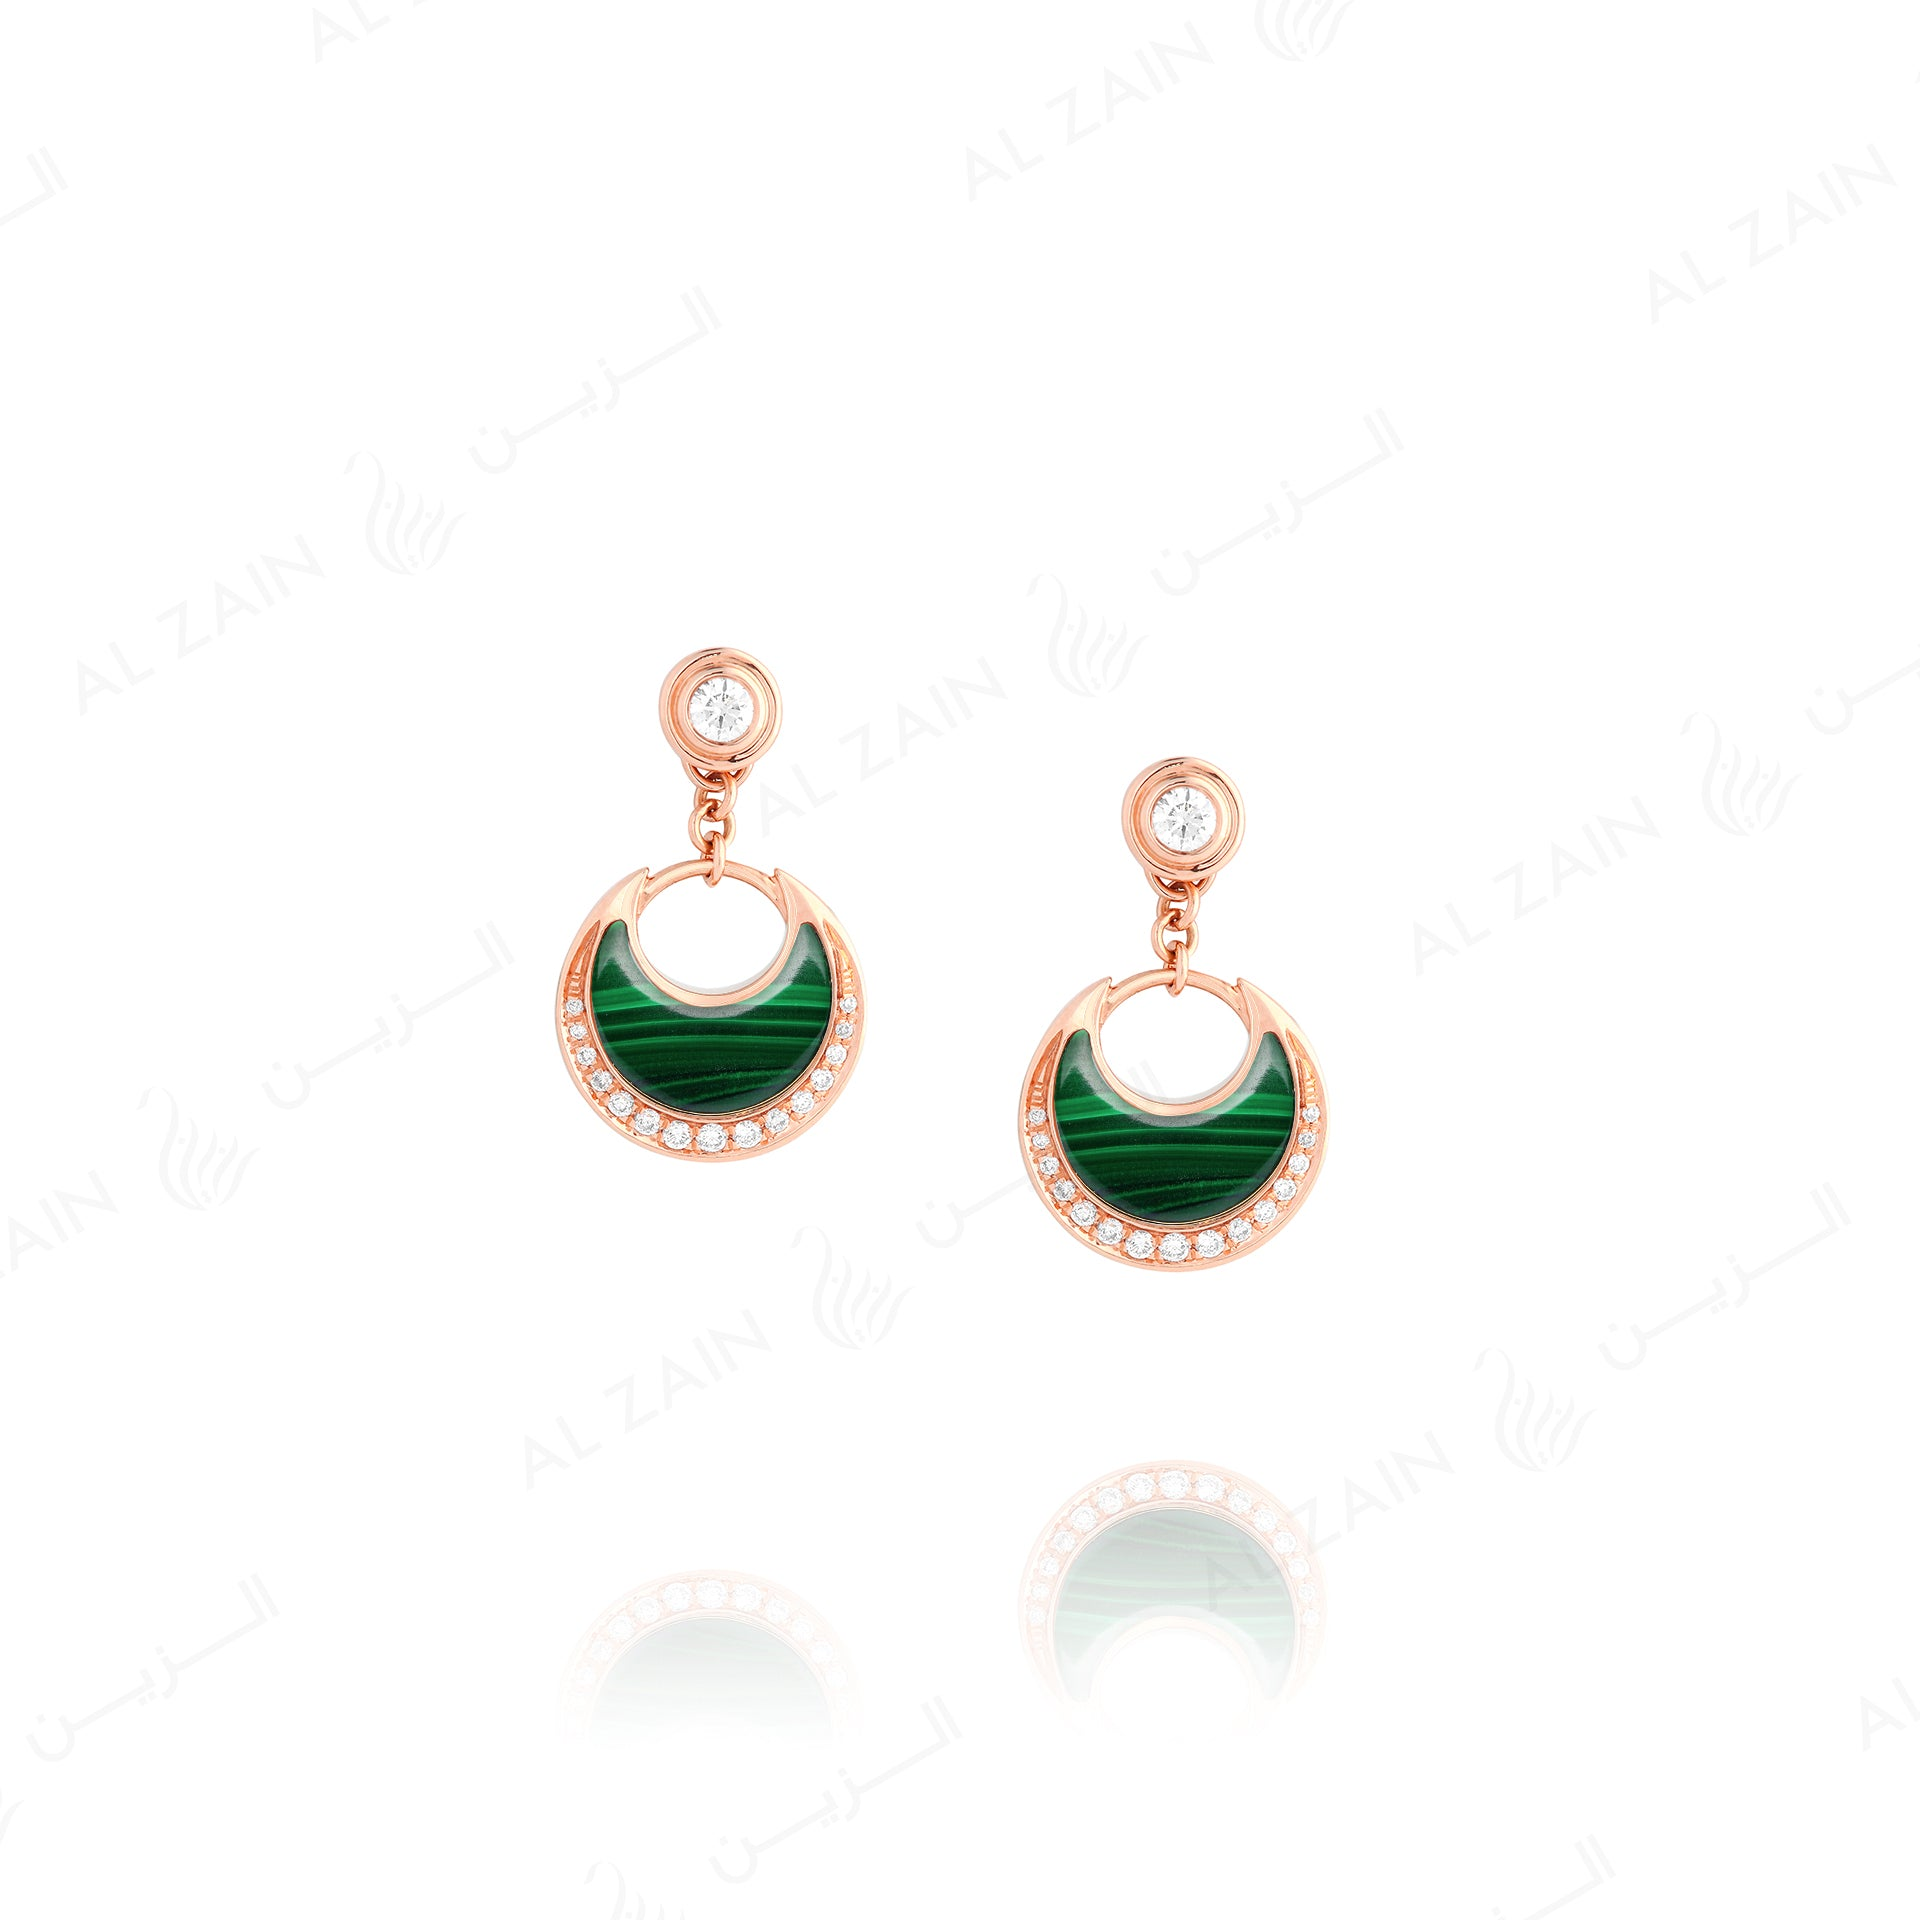 Al Hilal earrings in rose gold with malachite stone and diamonds - Al Zain Jewellery